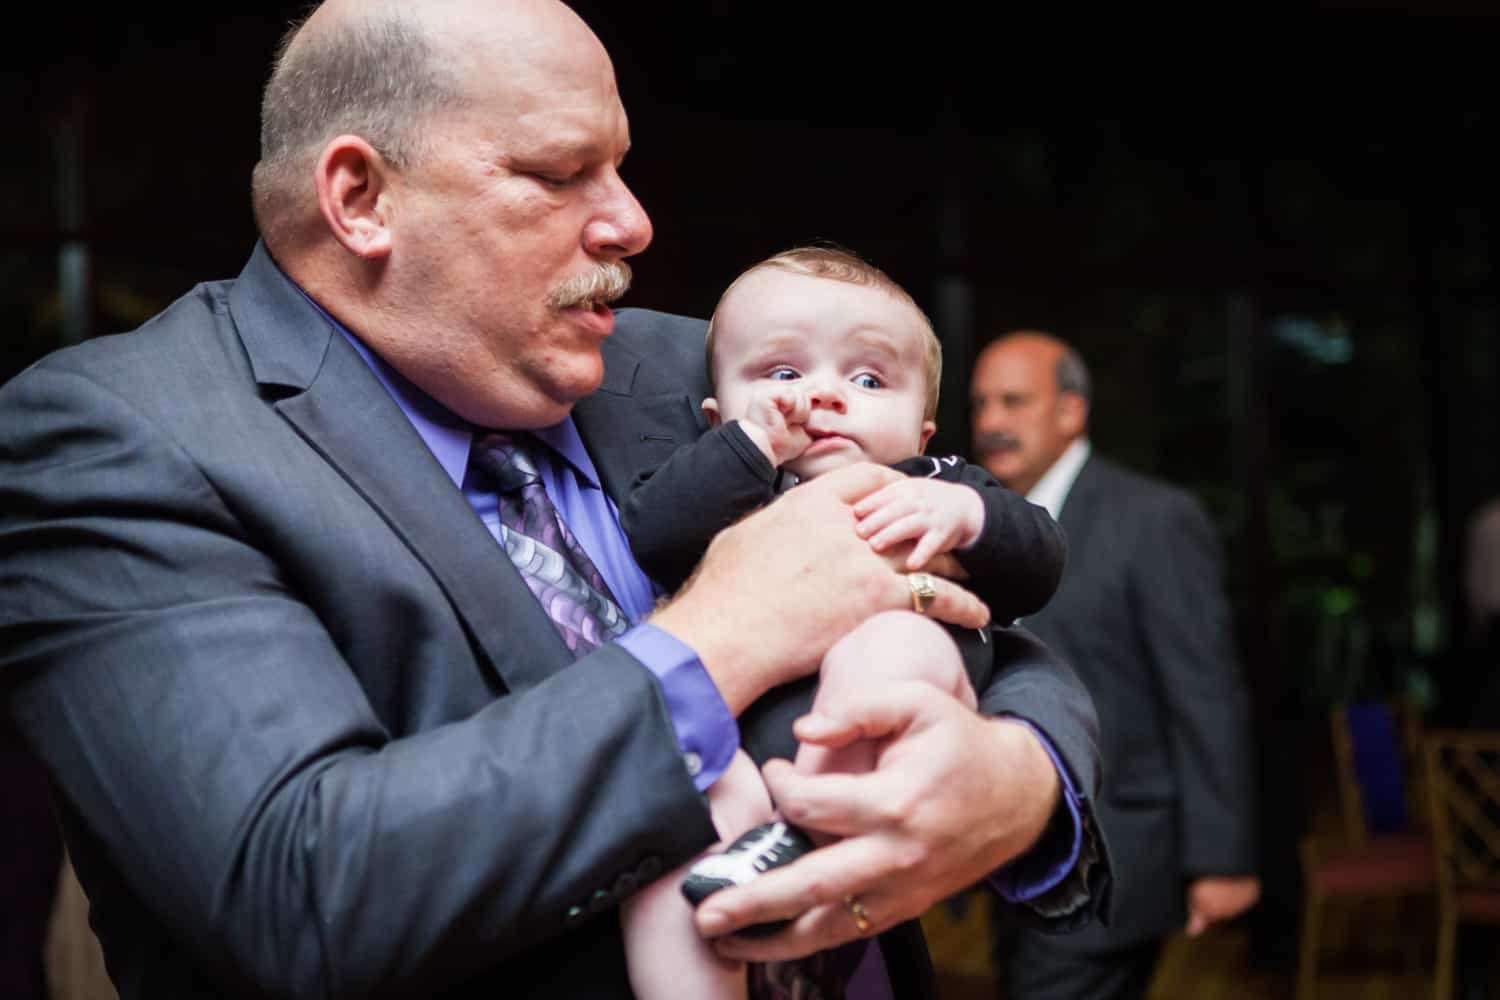 Grandfather holding little baby at a Nicotra's Ballroom wedding